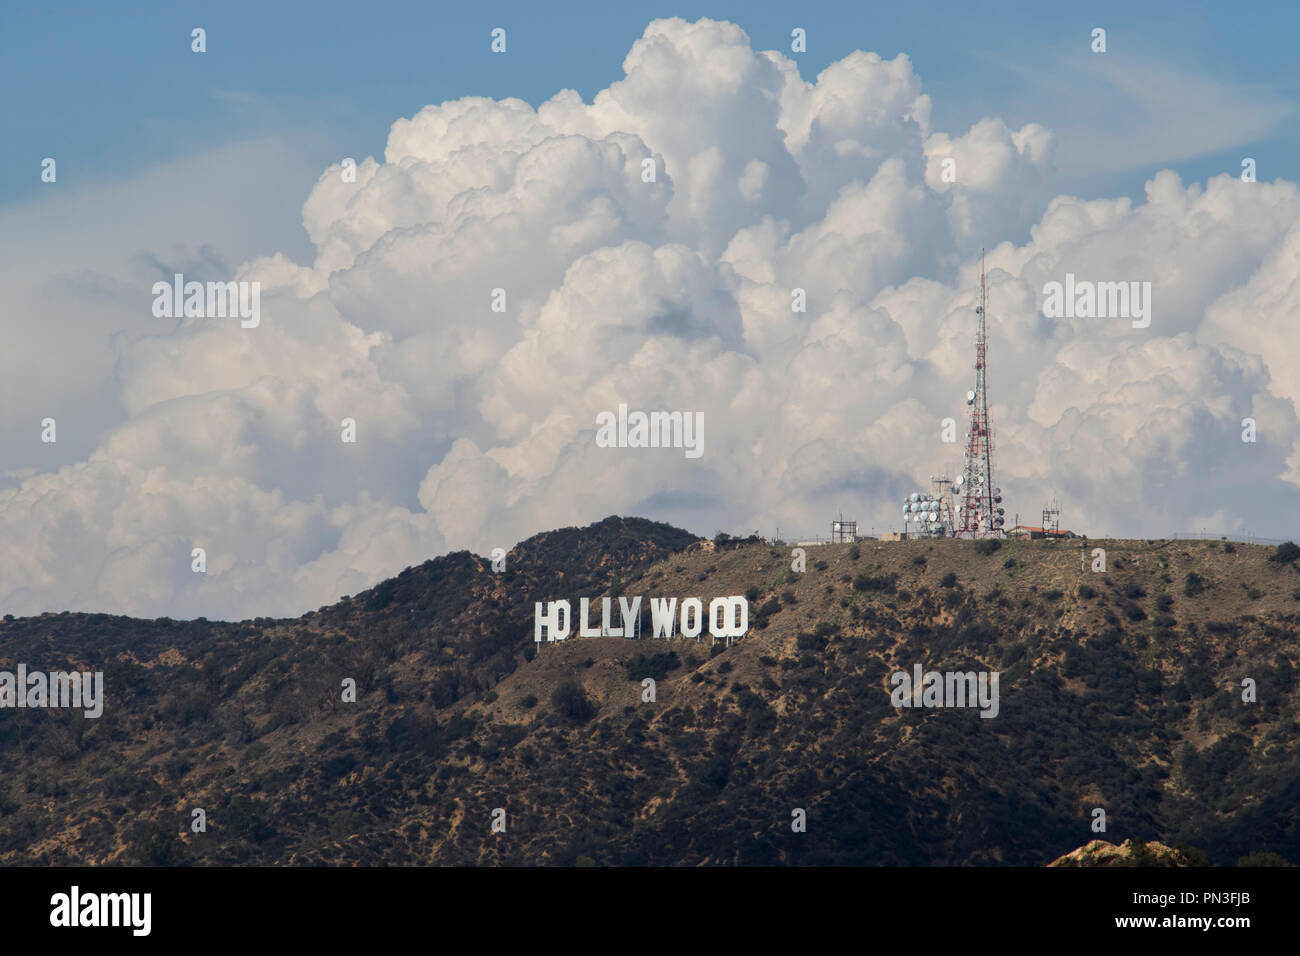 Hollywood sign in the hills of Los Angeles with clouds in the sky on a summer day. - Stock Image